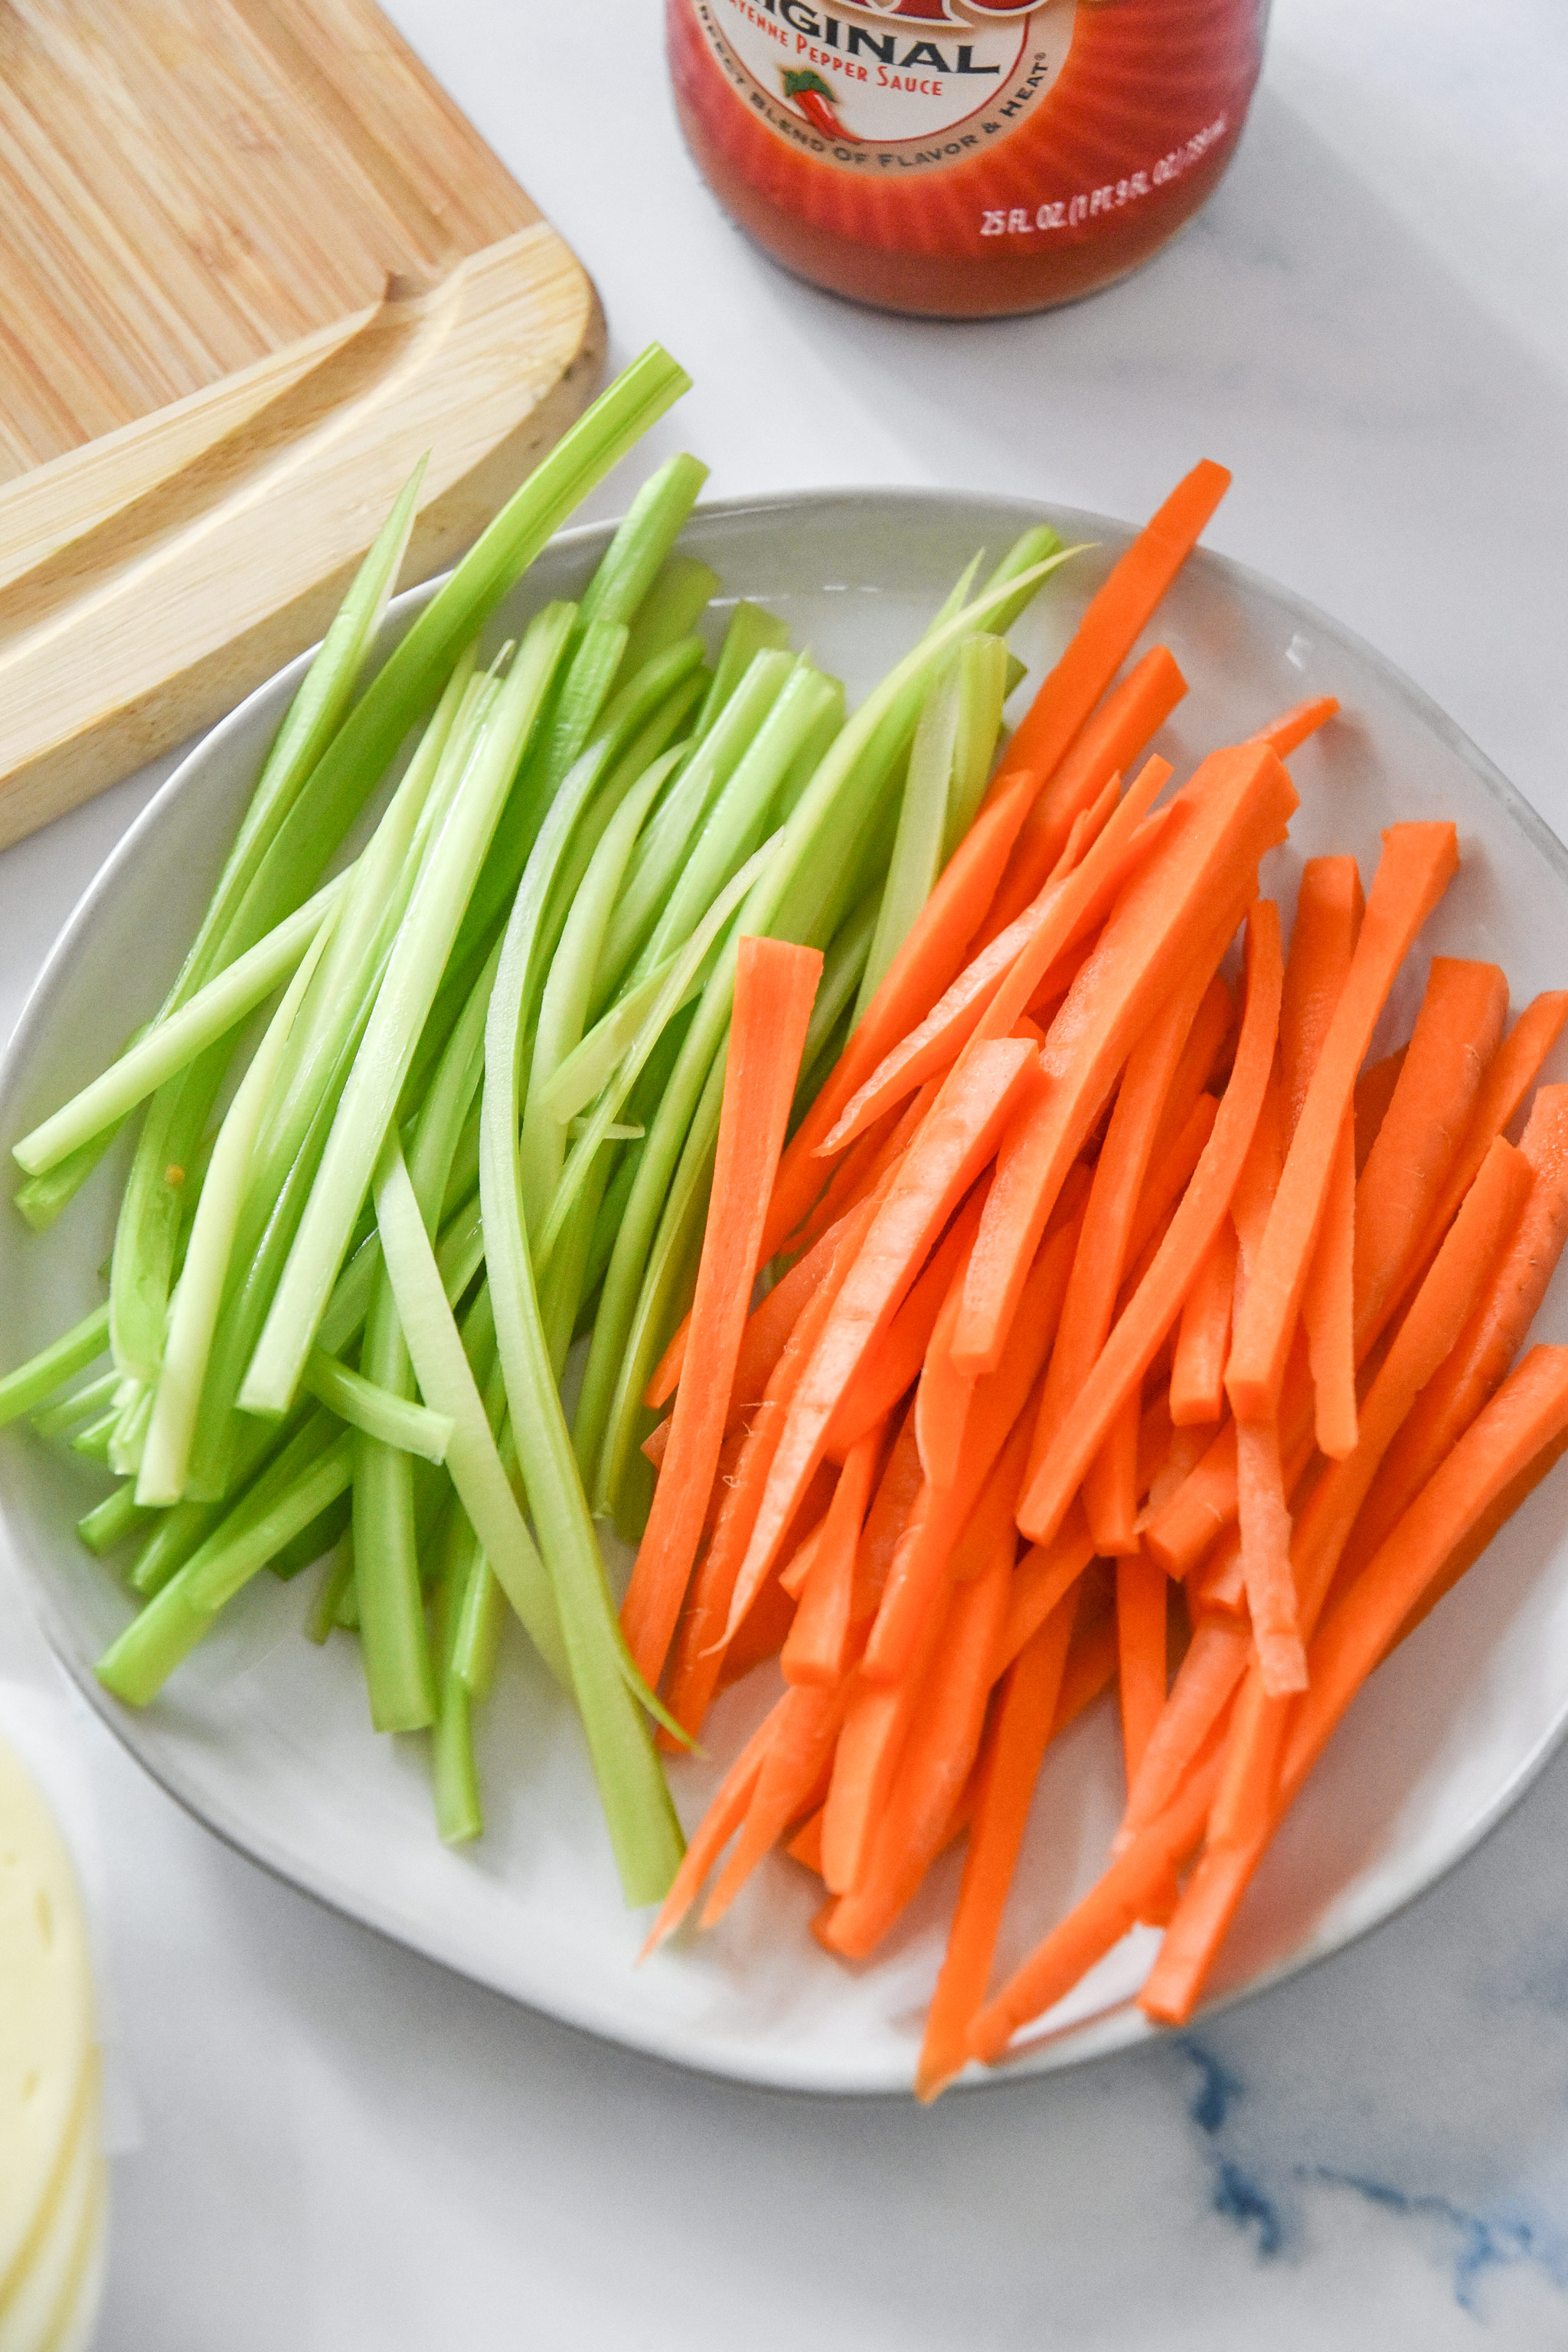 julienned carrots and celery on a plate.